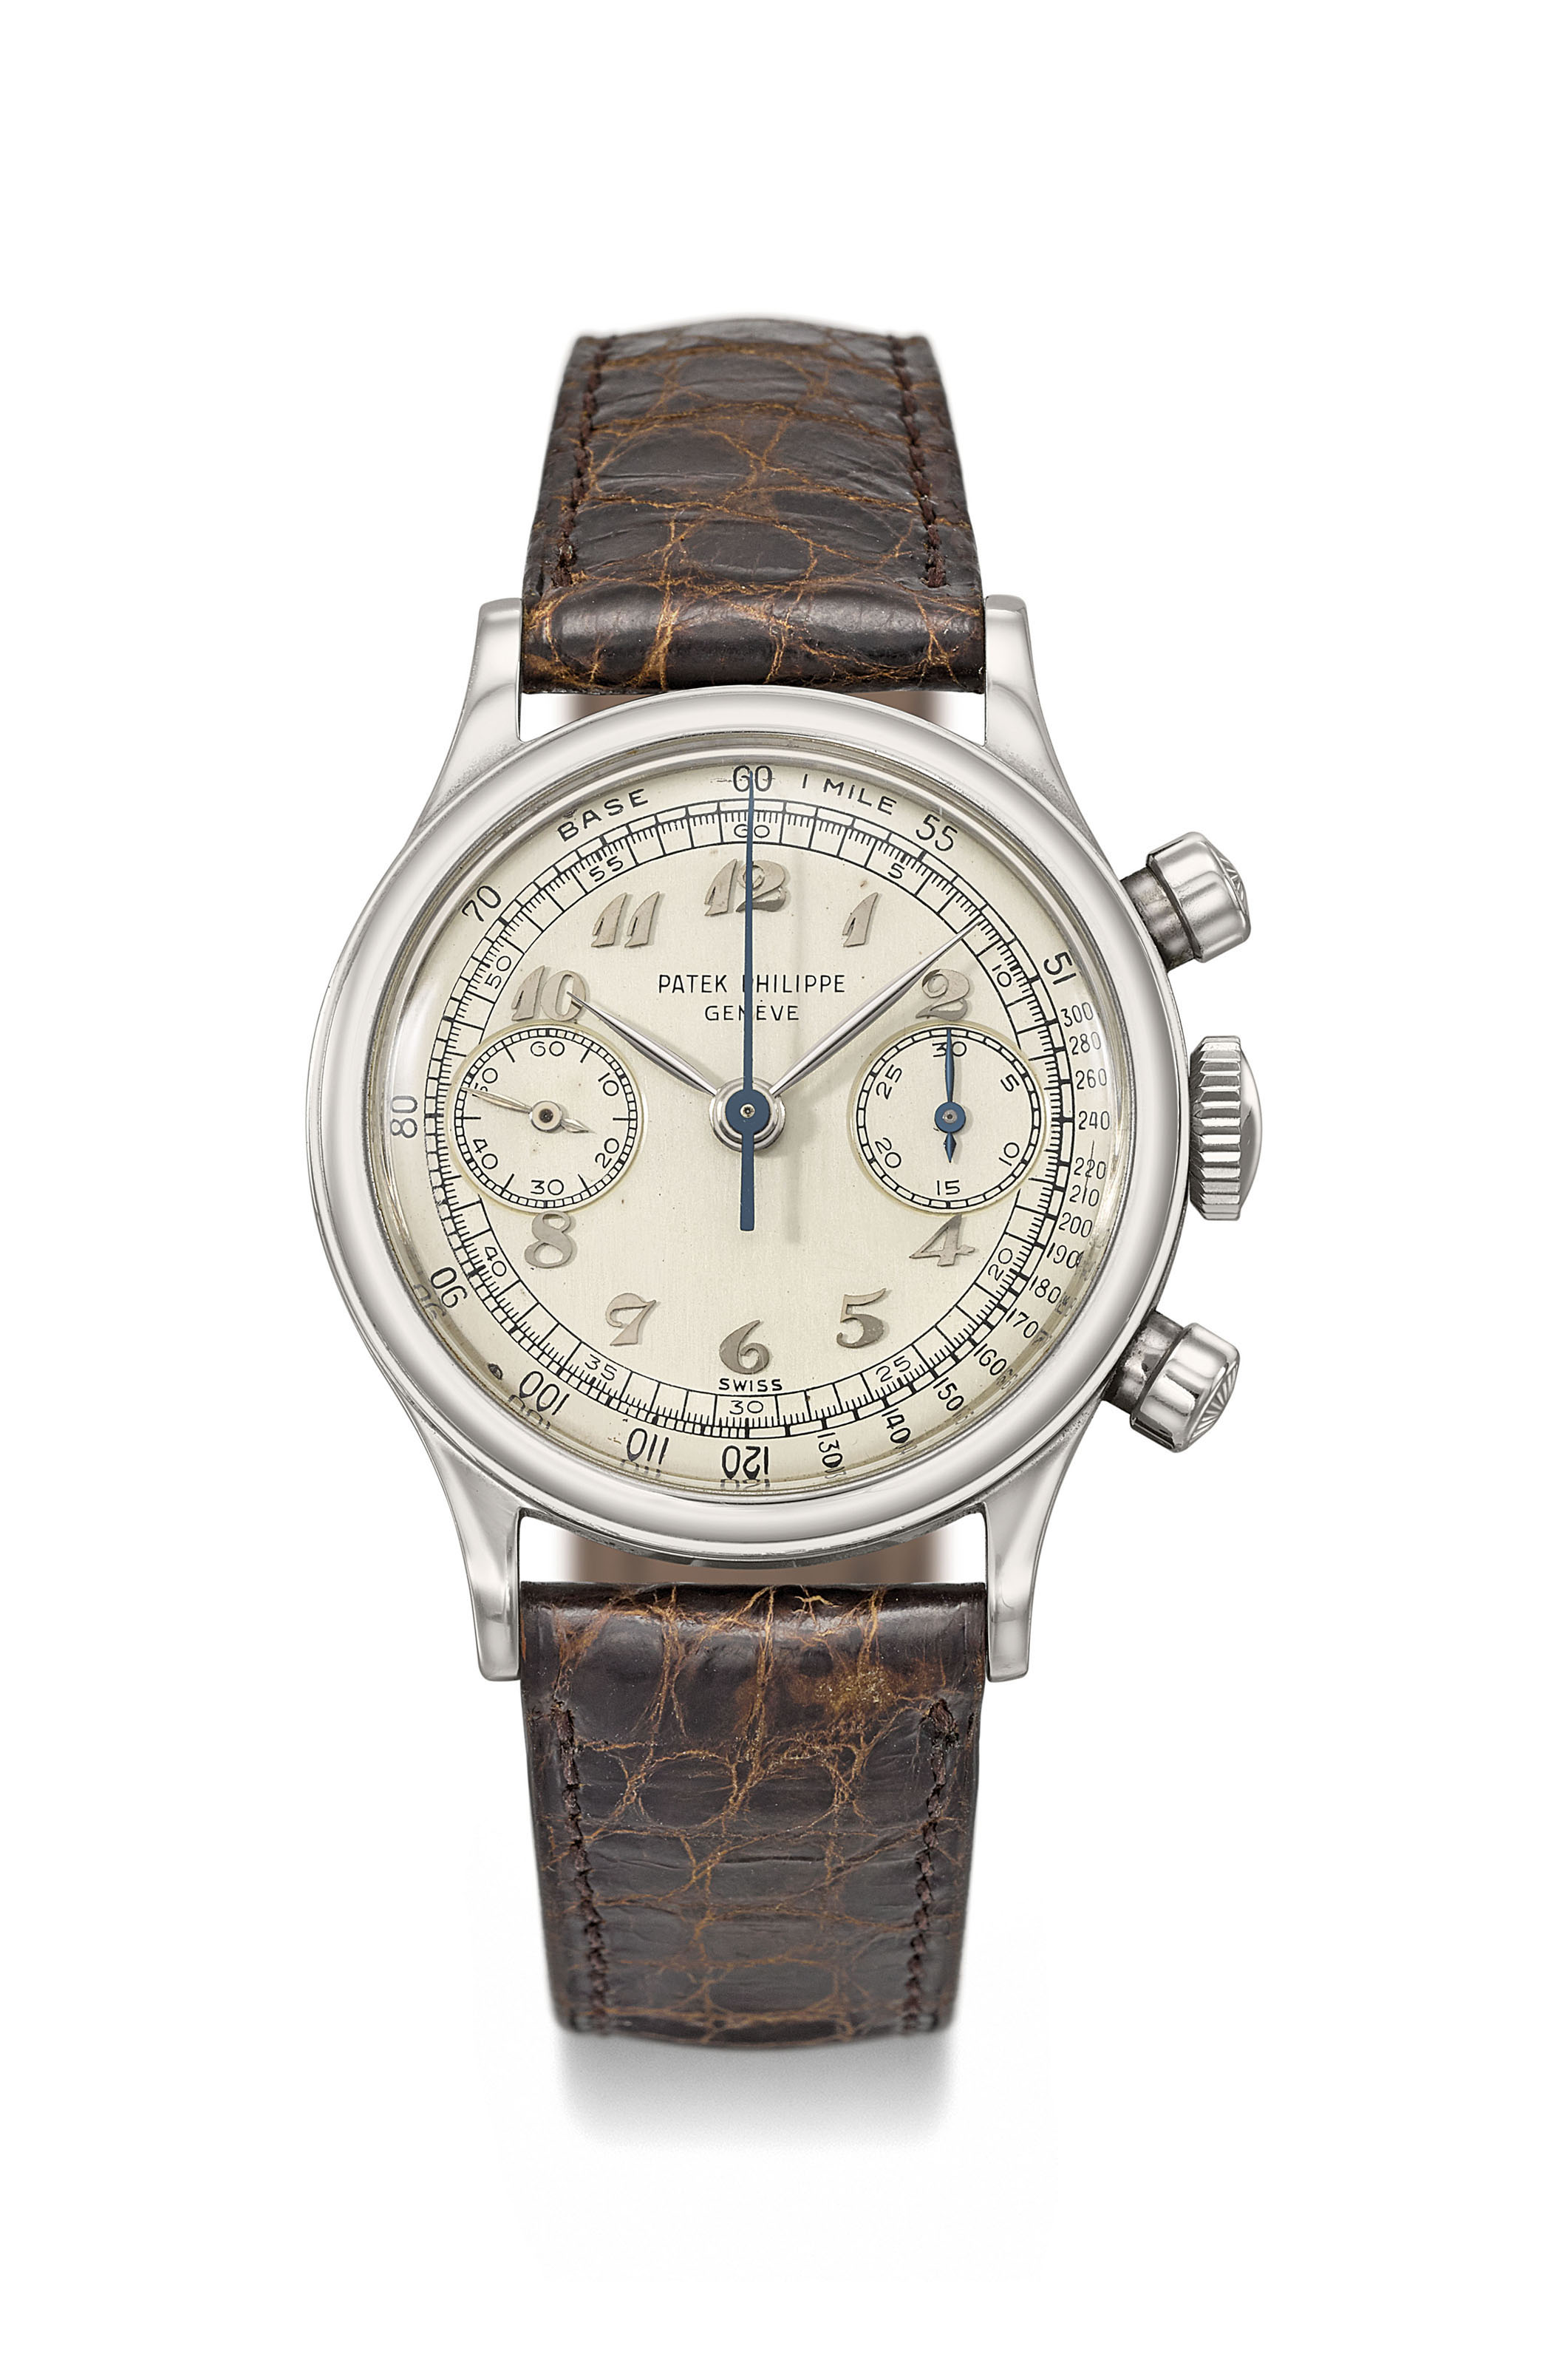 Patek Philippe. An extremely attractive, very fine and exceptionally rare stainless steel chronograph wristwatch with Breguet numerals